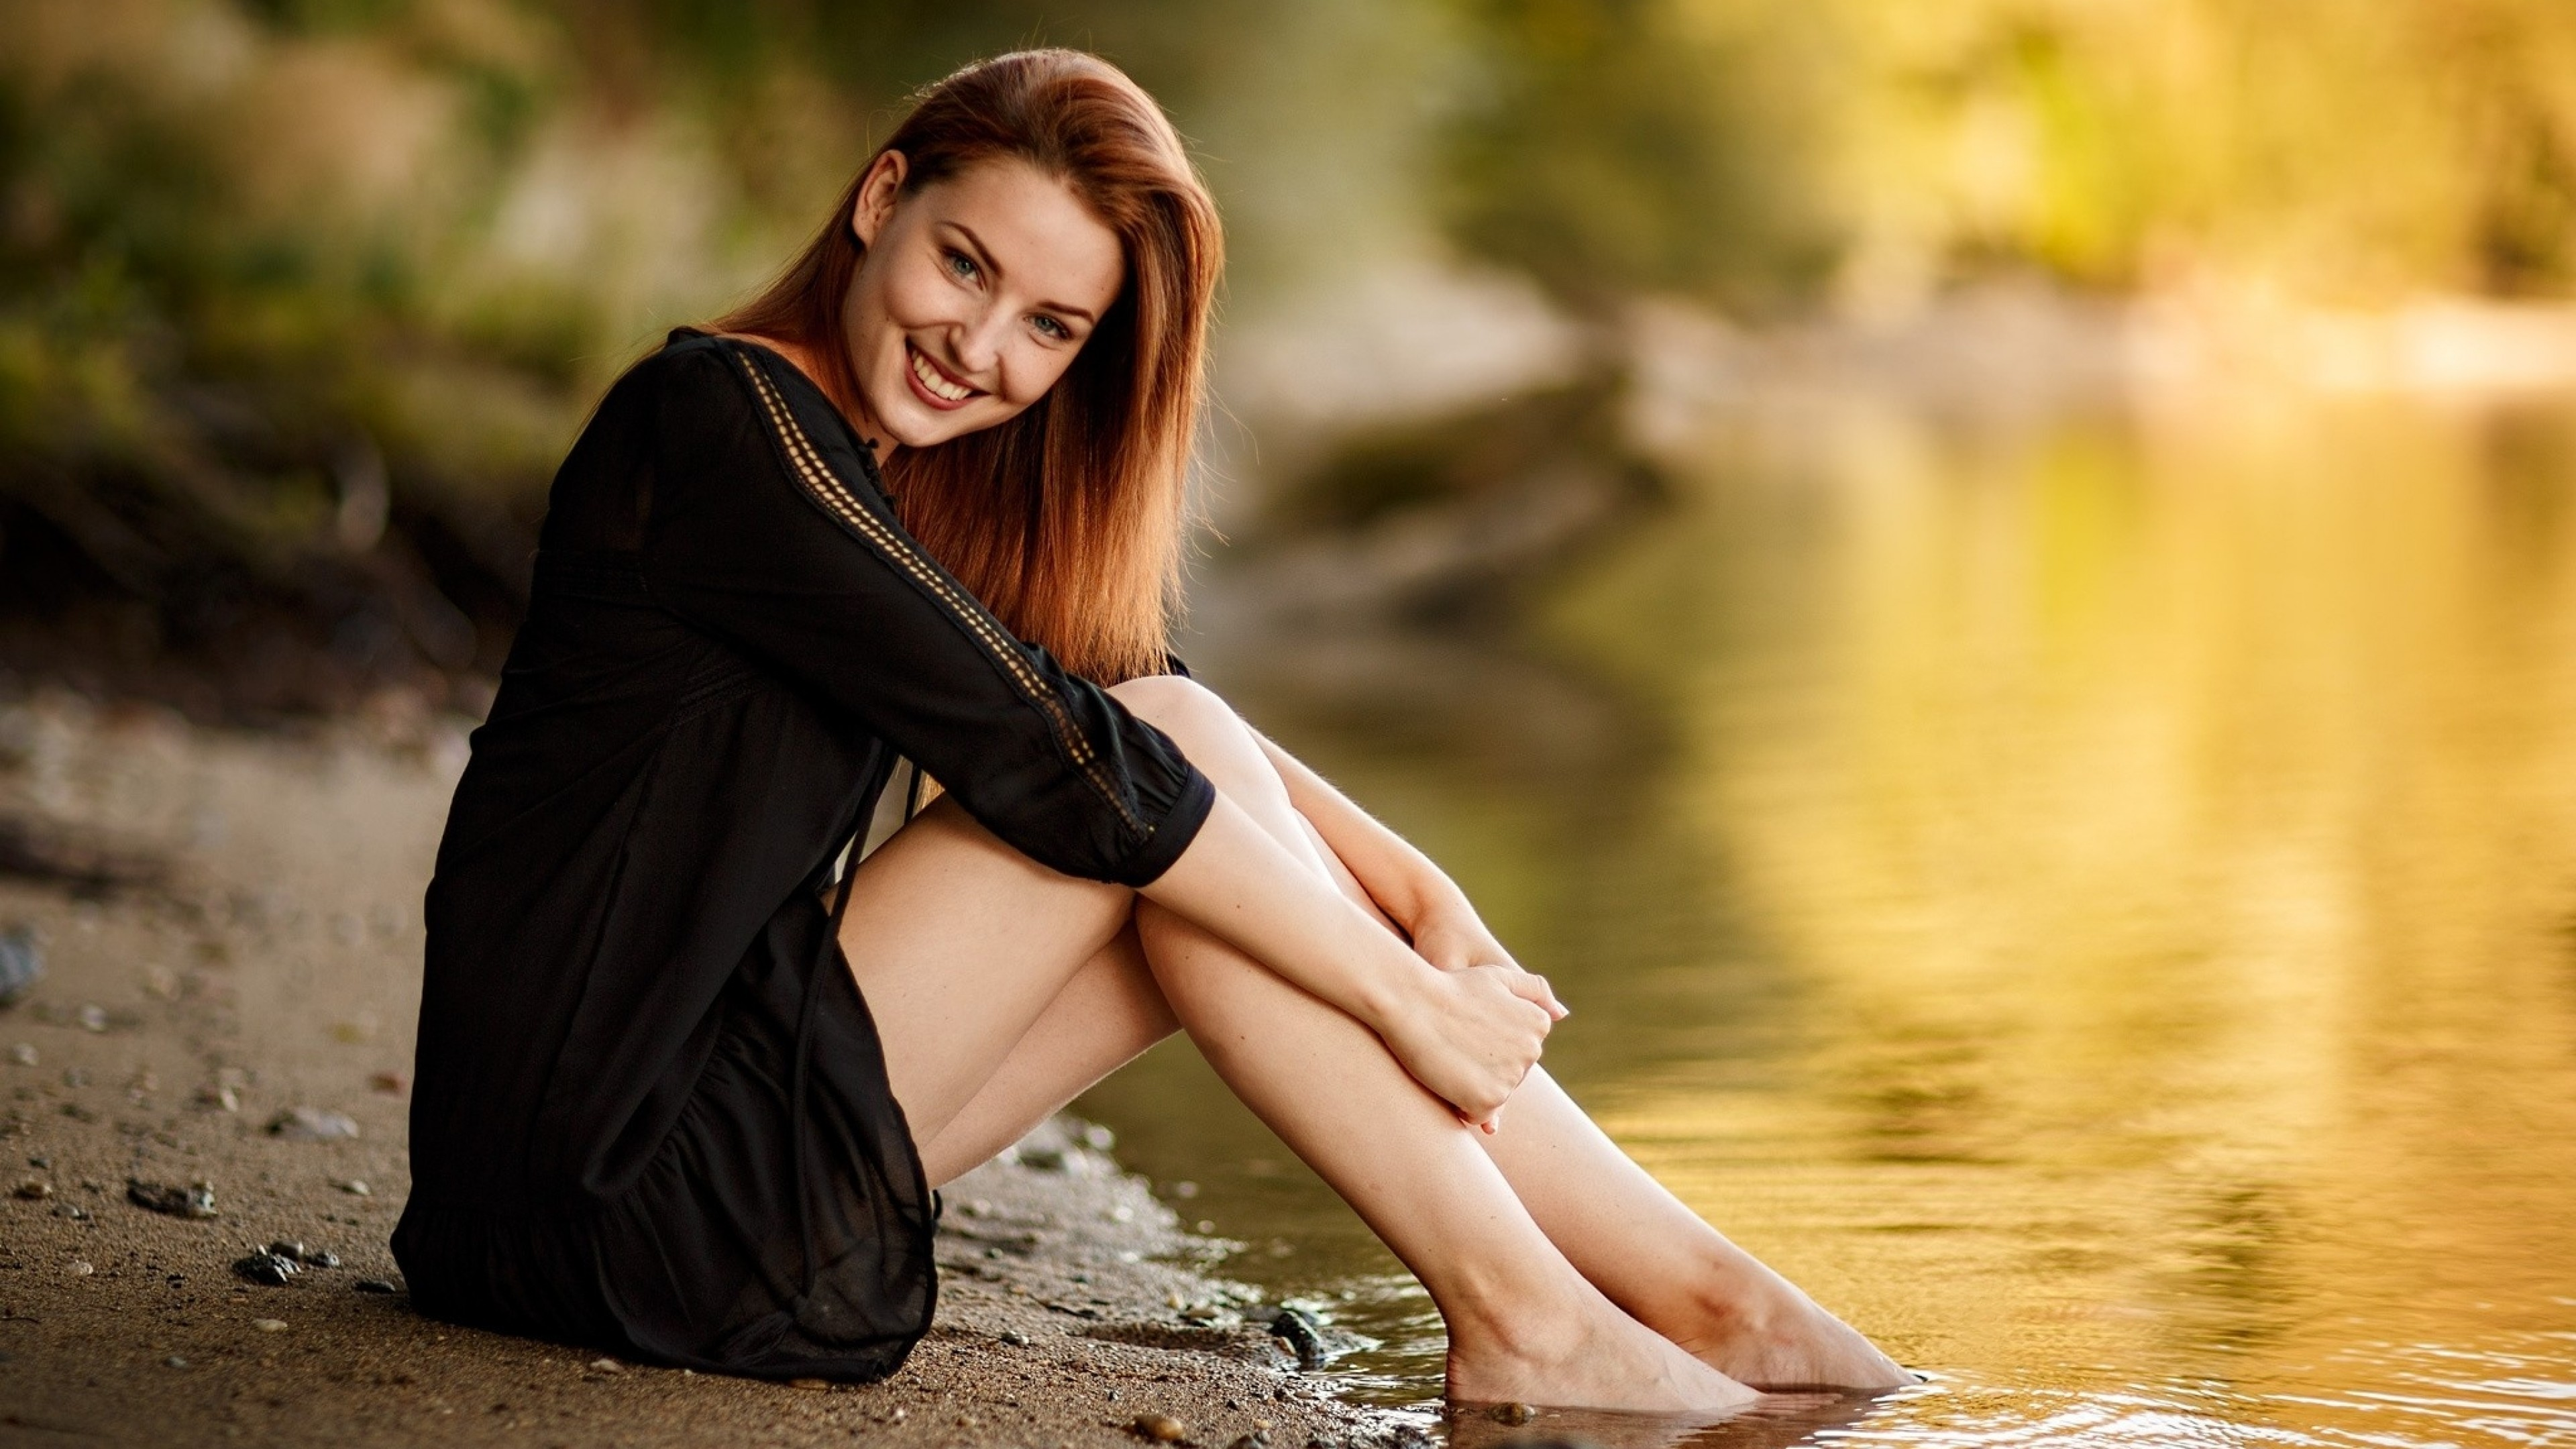 Download 3840x2160 Redhead Smiling Sitting Water Model 3840x2160